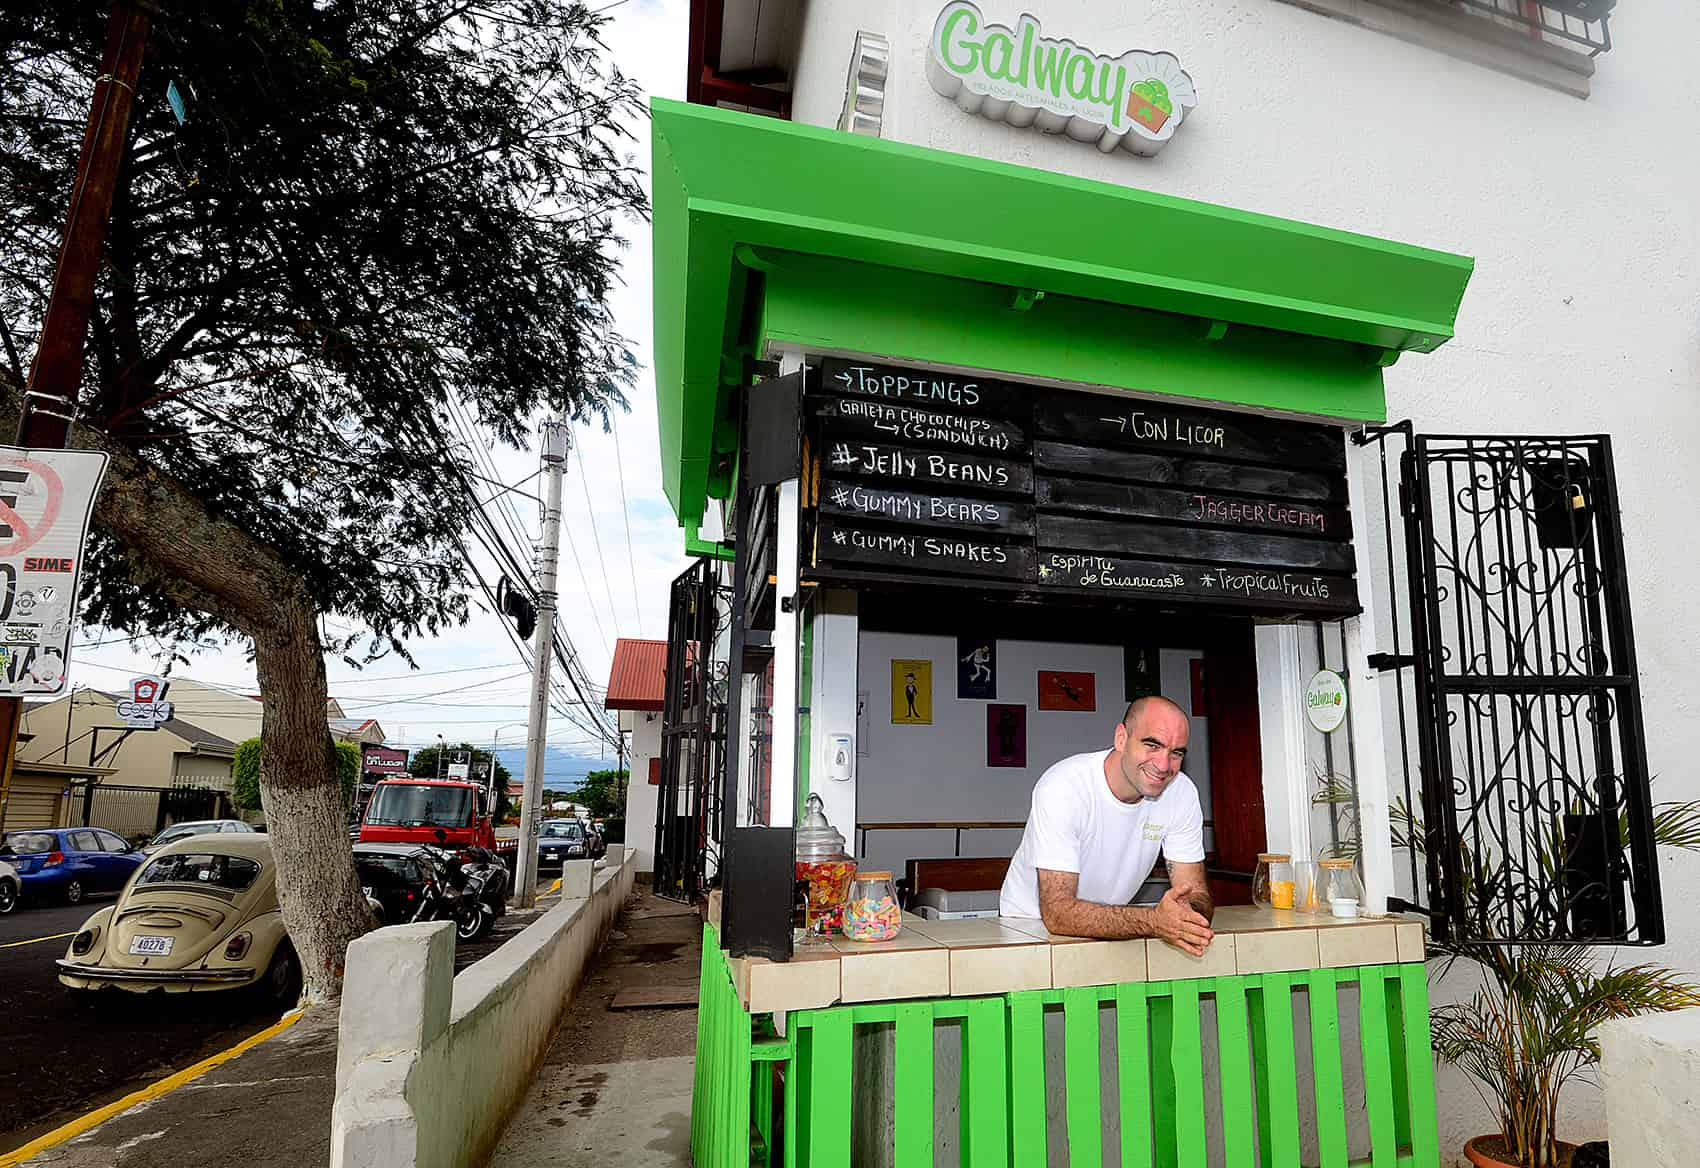 Costa Rica ice cream: Rodrigo Brenes at Galway